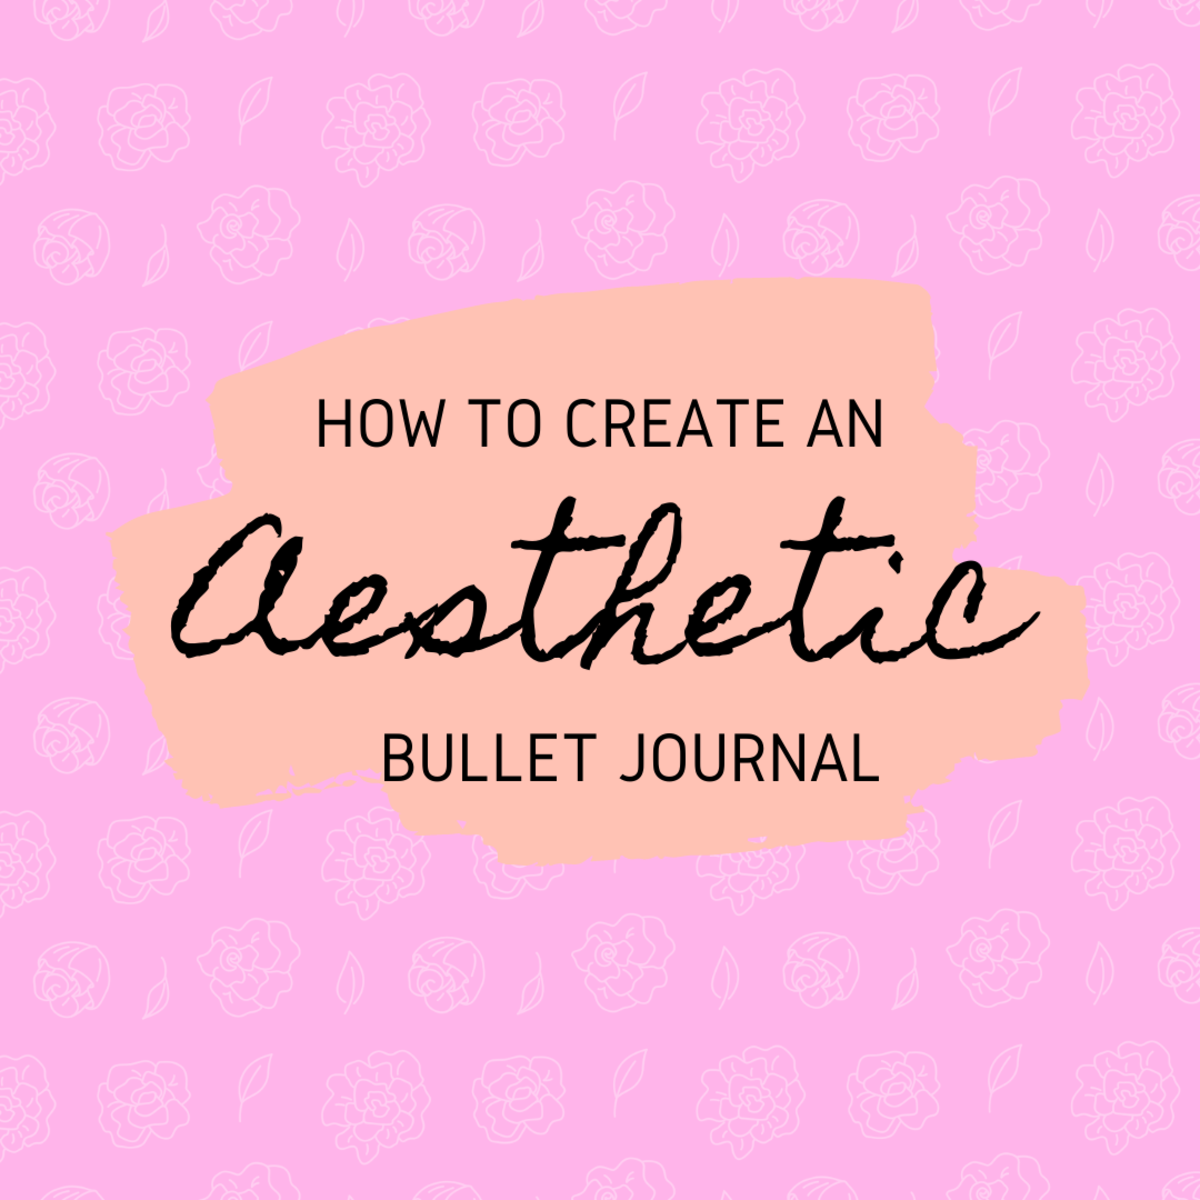 In this guide, I'm going to show you how to create an aesthetic bullet journal!